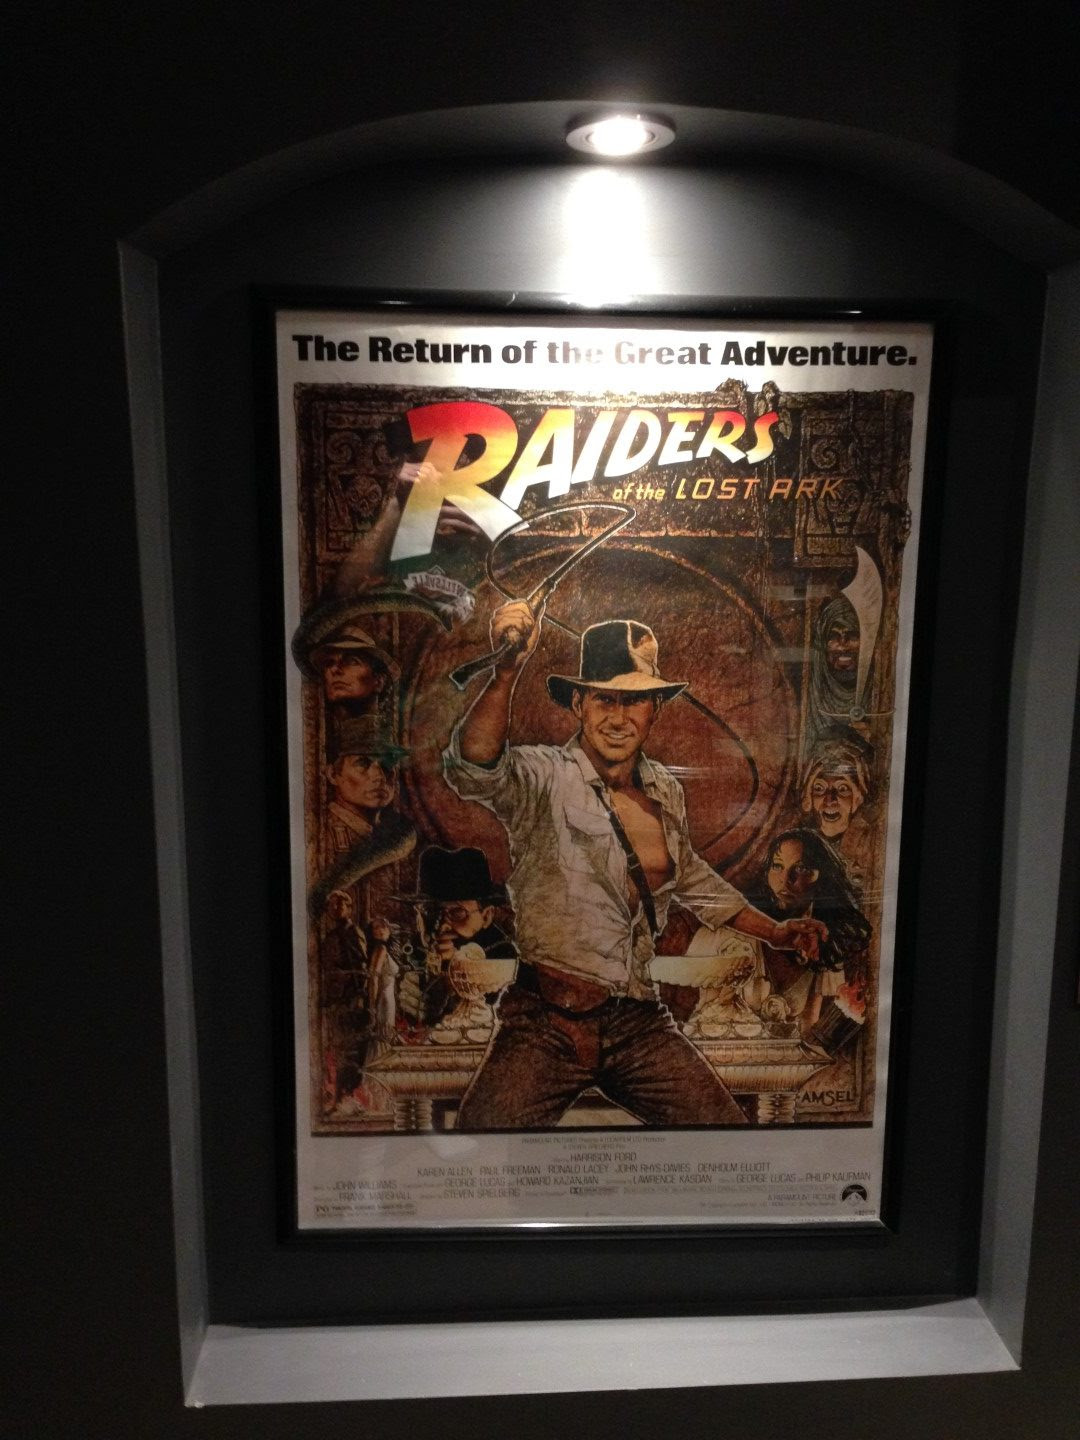 Movie poster lighted wall alcoves - Game Room Info